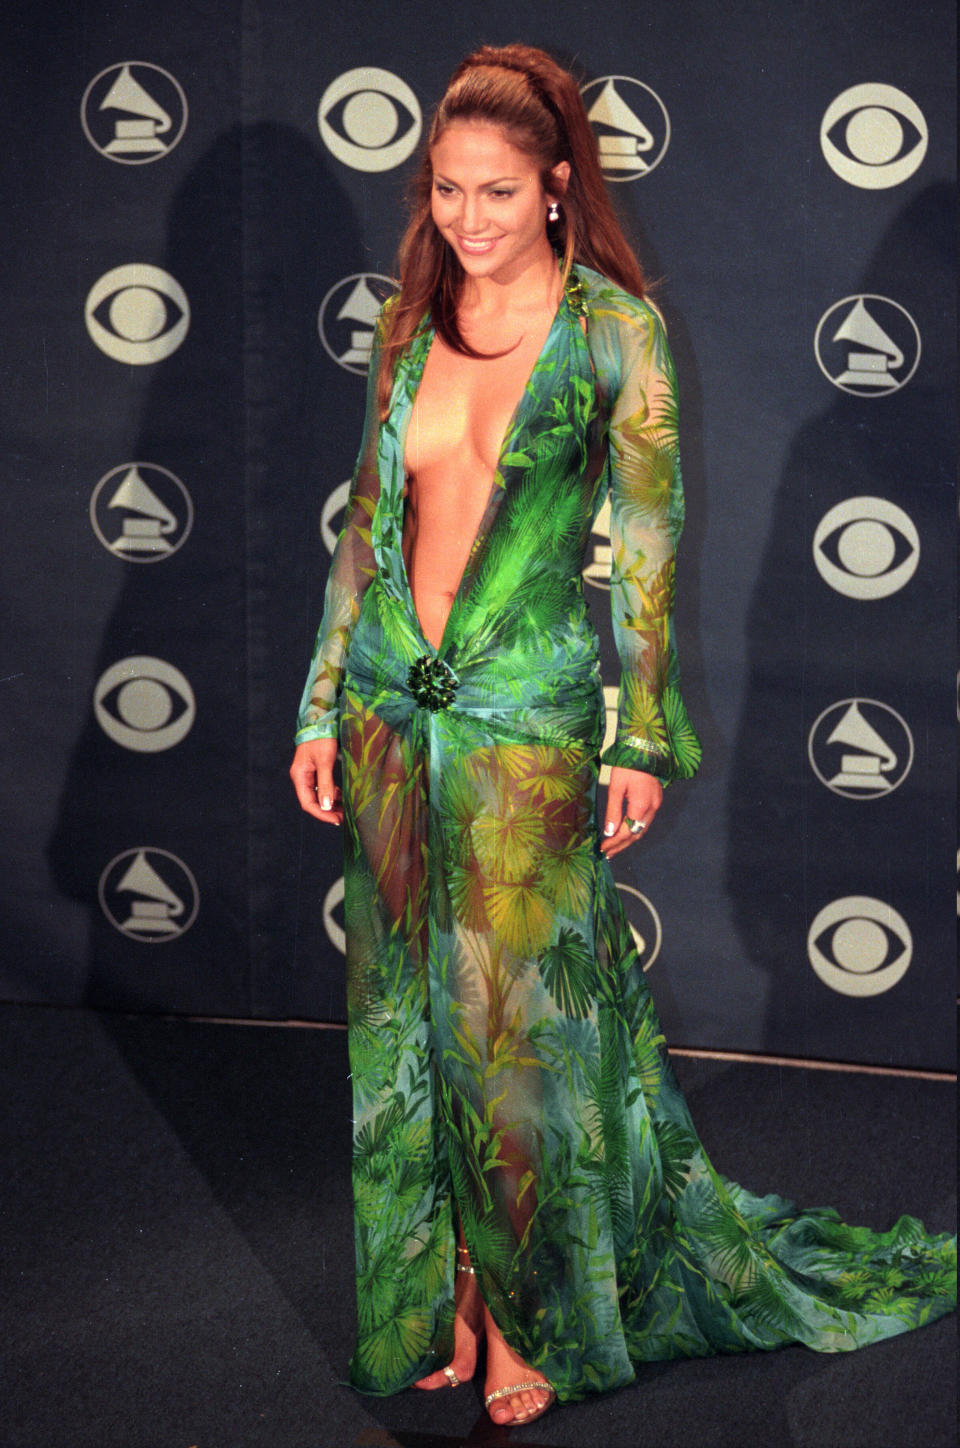 Jennifer Lopez wore the now-iconic green Versace dress to the 42nd Annual Grammy Awards in 2000. (Photo by Kirby Lee/WireImage)